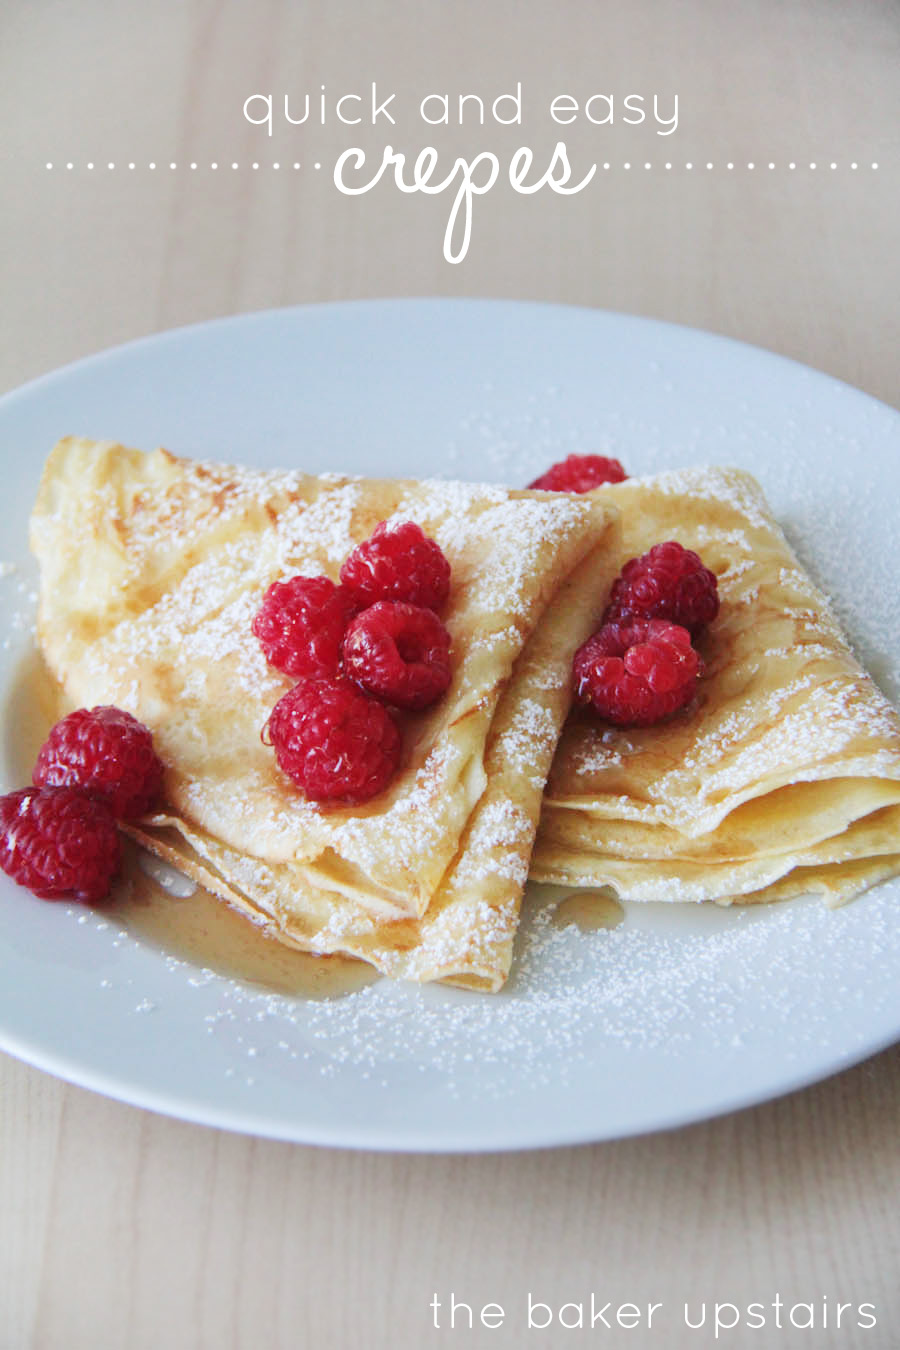 Quick Easy Makeup Tips Ideas For Work: The Baker Upstairs: Quick And Easy Crepes